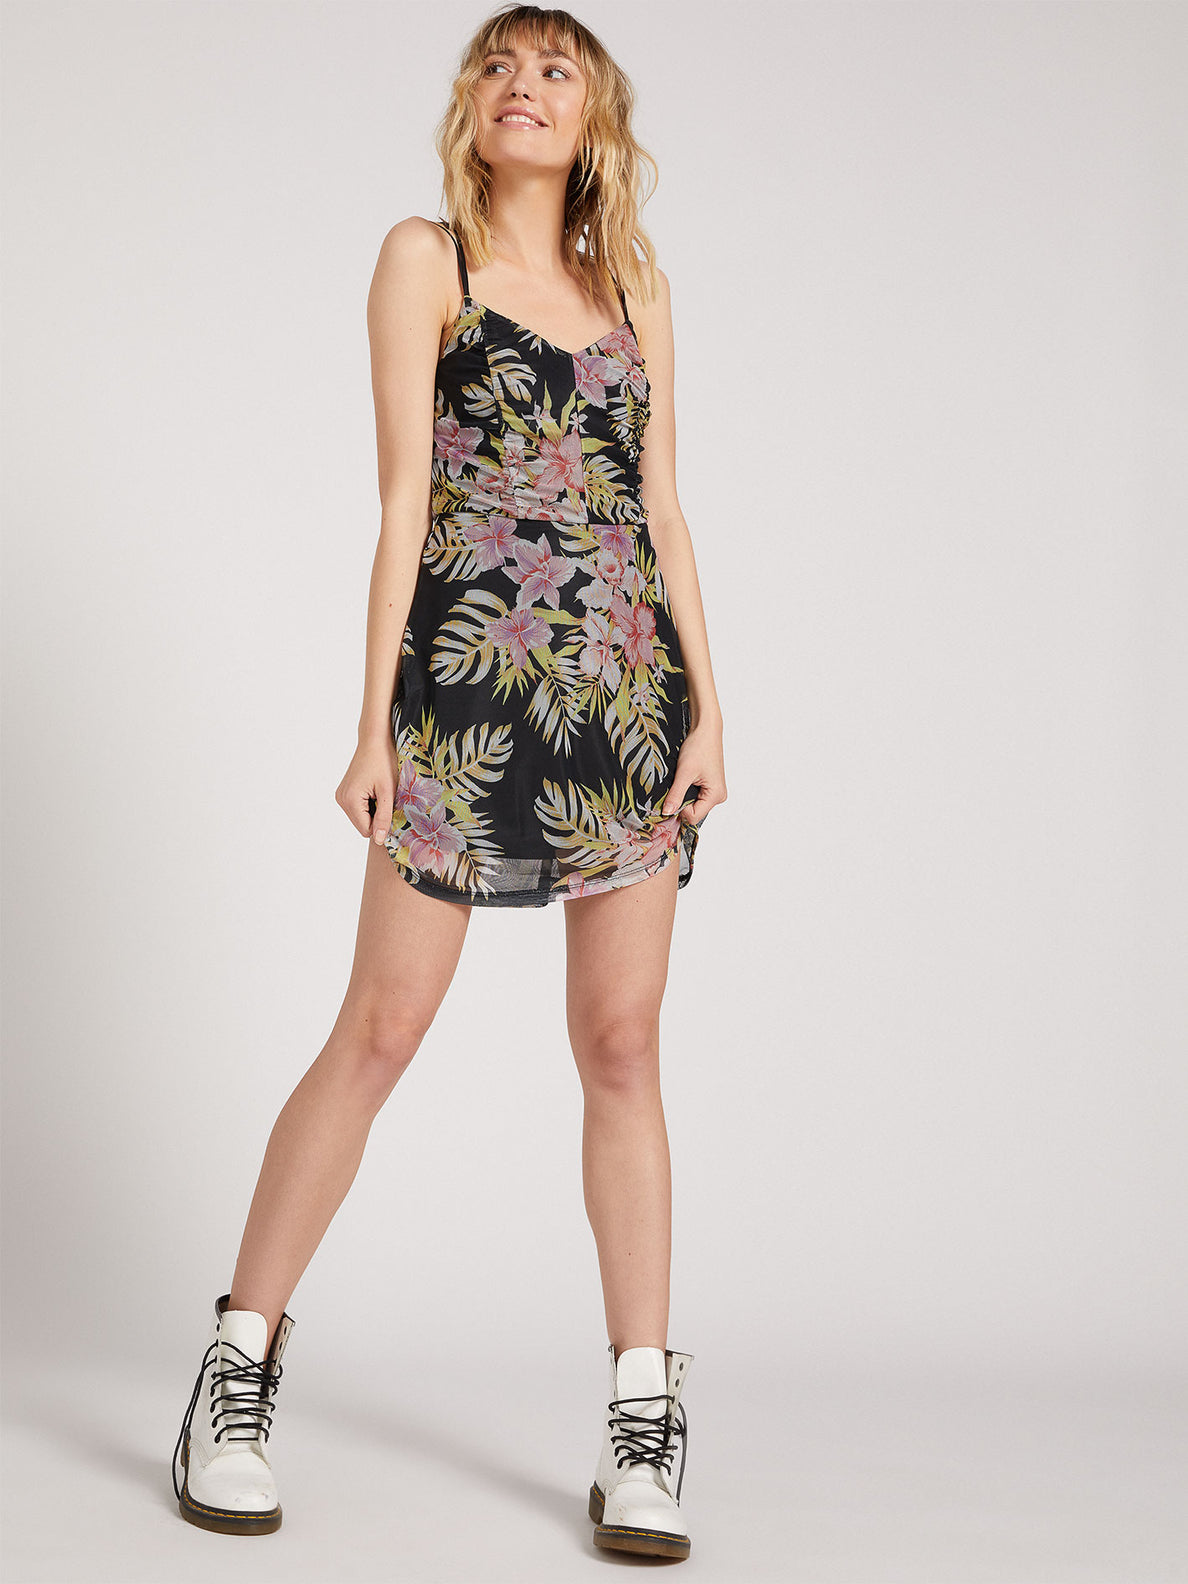 Slushy Hour Dress - Black Floral Print (B1311910_BFP) [B]